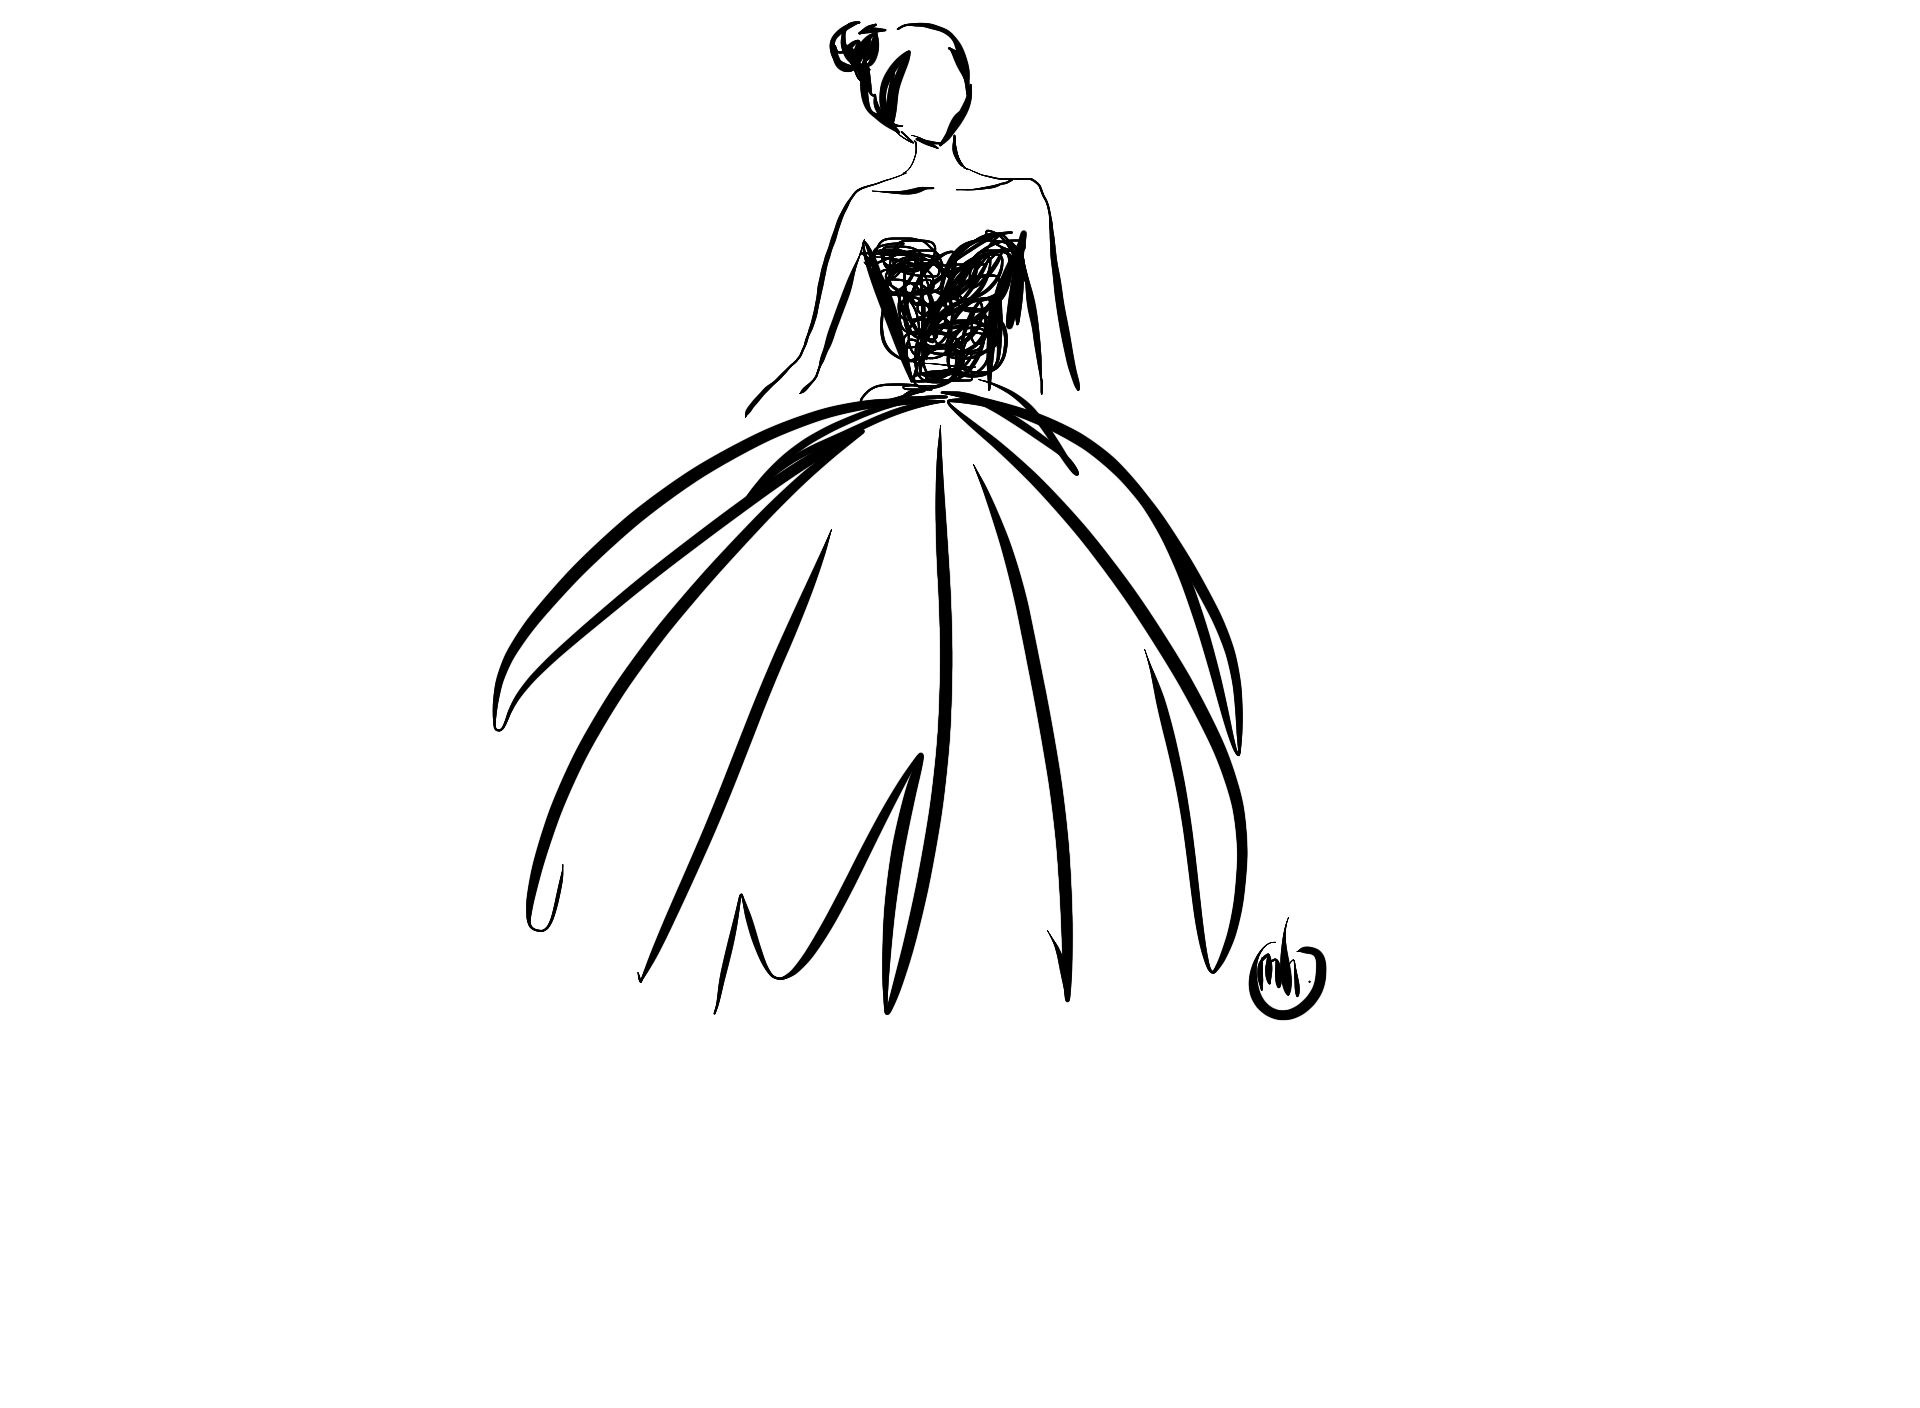 Fashion Design Sketches Black And White Black And White Sketches Black And White Drawing Black And White Painting